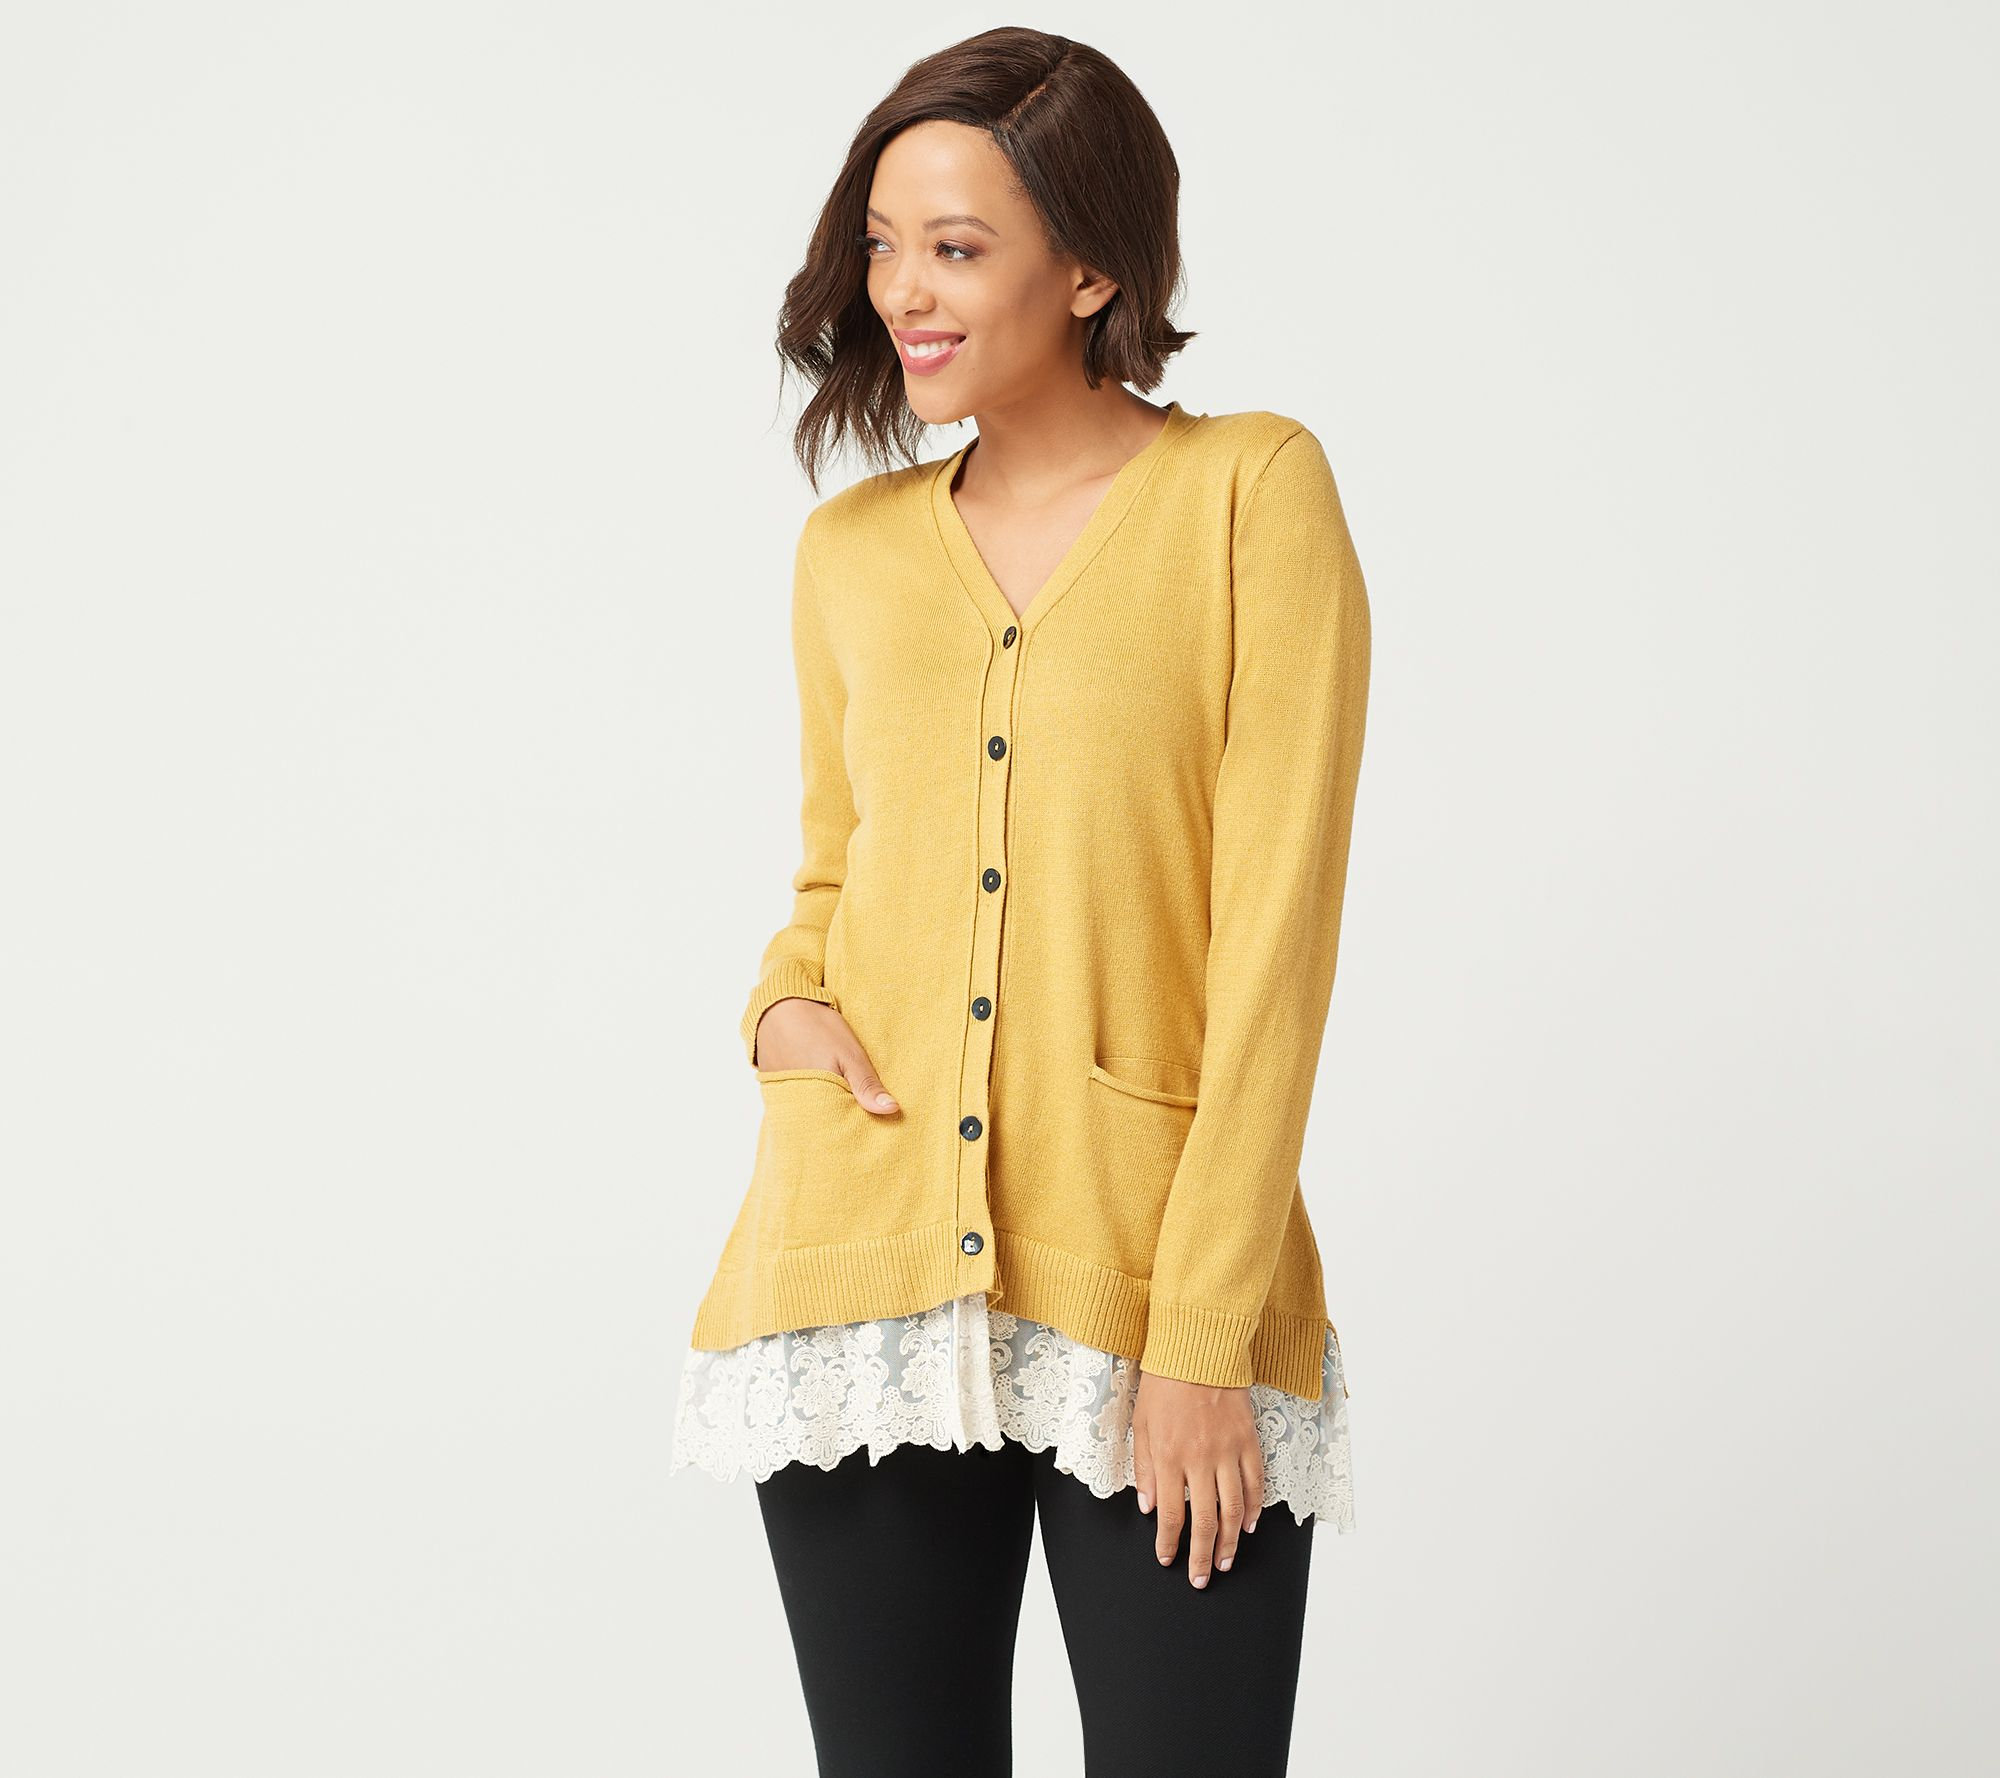 9d0a1e59f4 LOGO by Lori Goldstein Button Front Knit Cardigan with Lace Hem ...